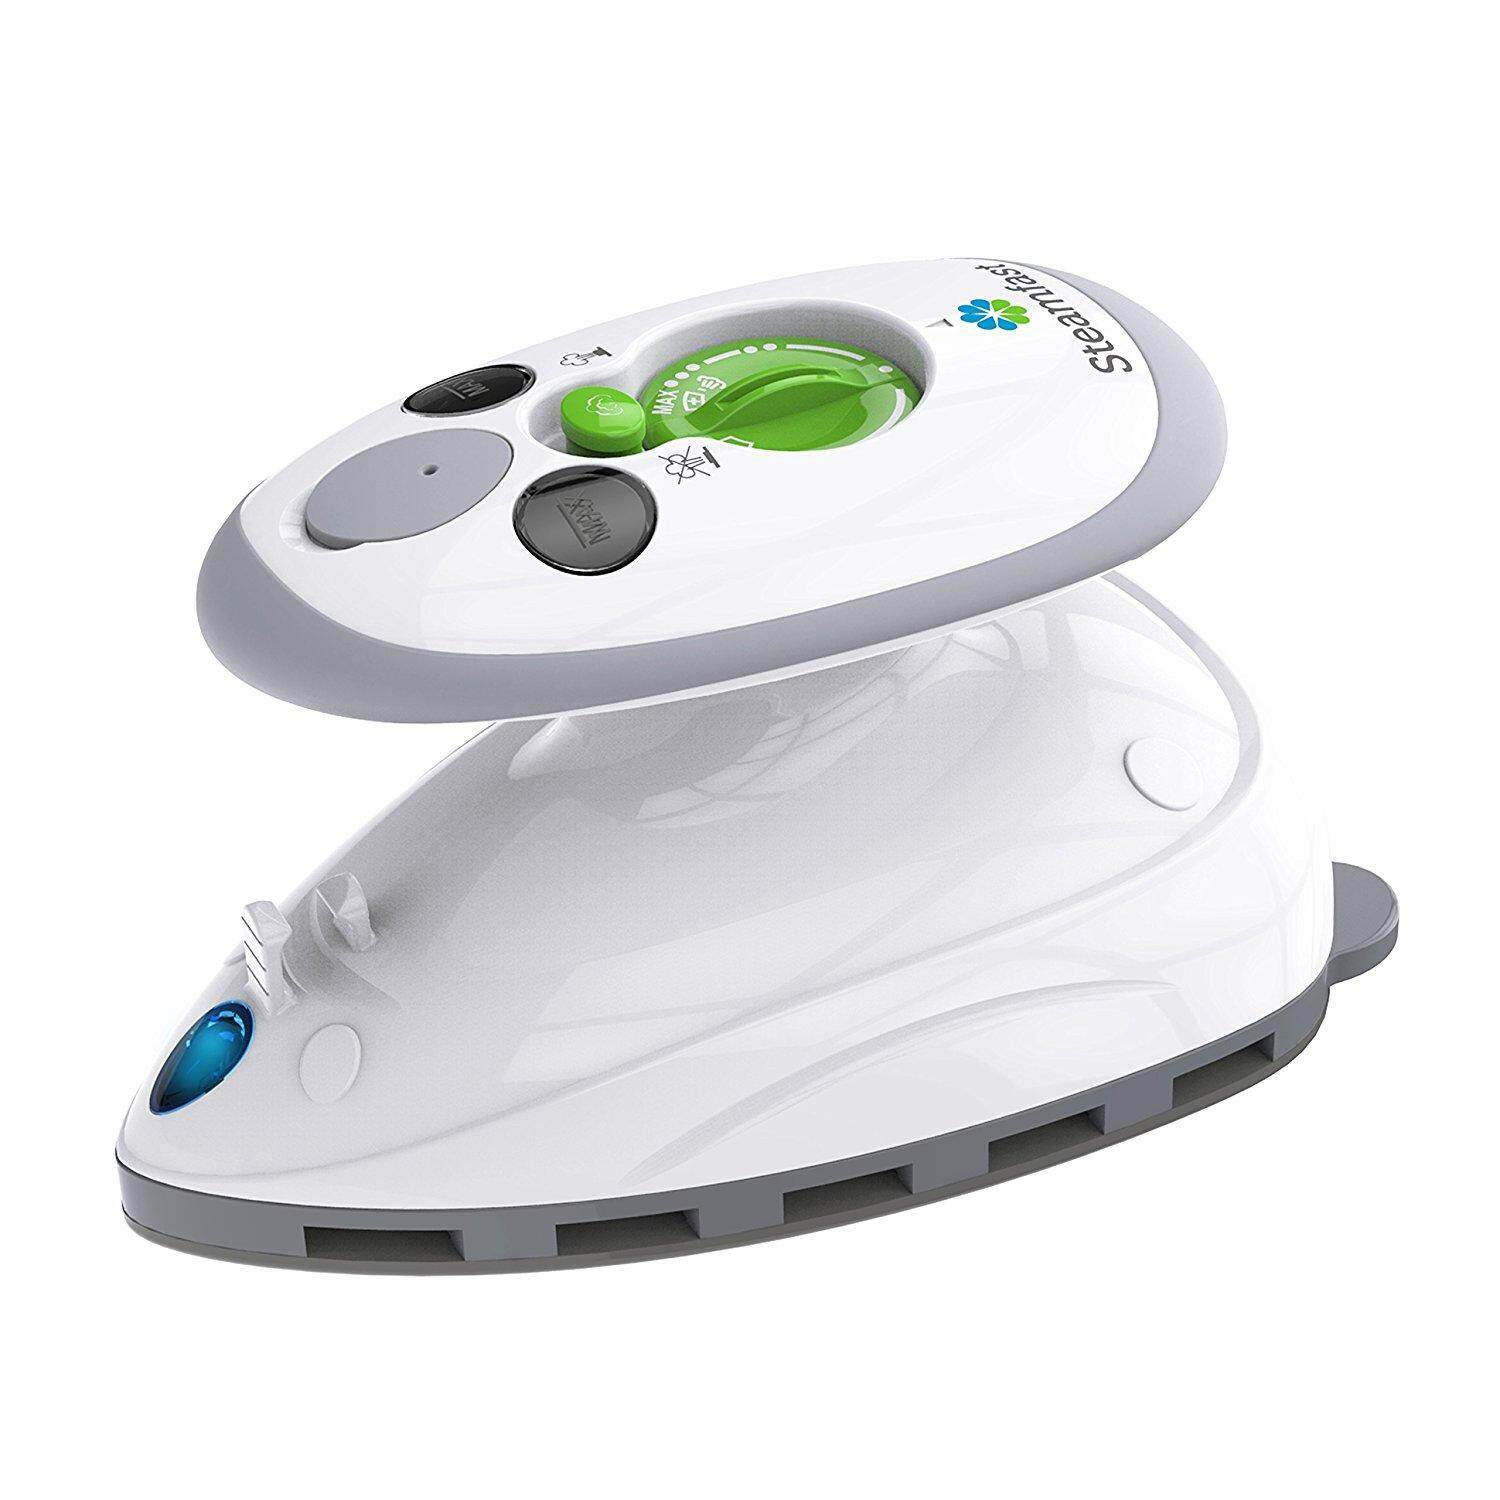 Steamfast SF-717 Mini Travel Steam Iron with Dual Voltage, Travel Bag, Non-Stick Soleplate, Anti-Slip Handle, Rapid Heating, 420W Power